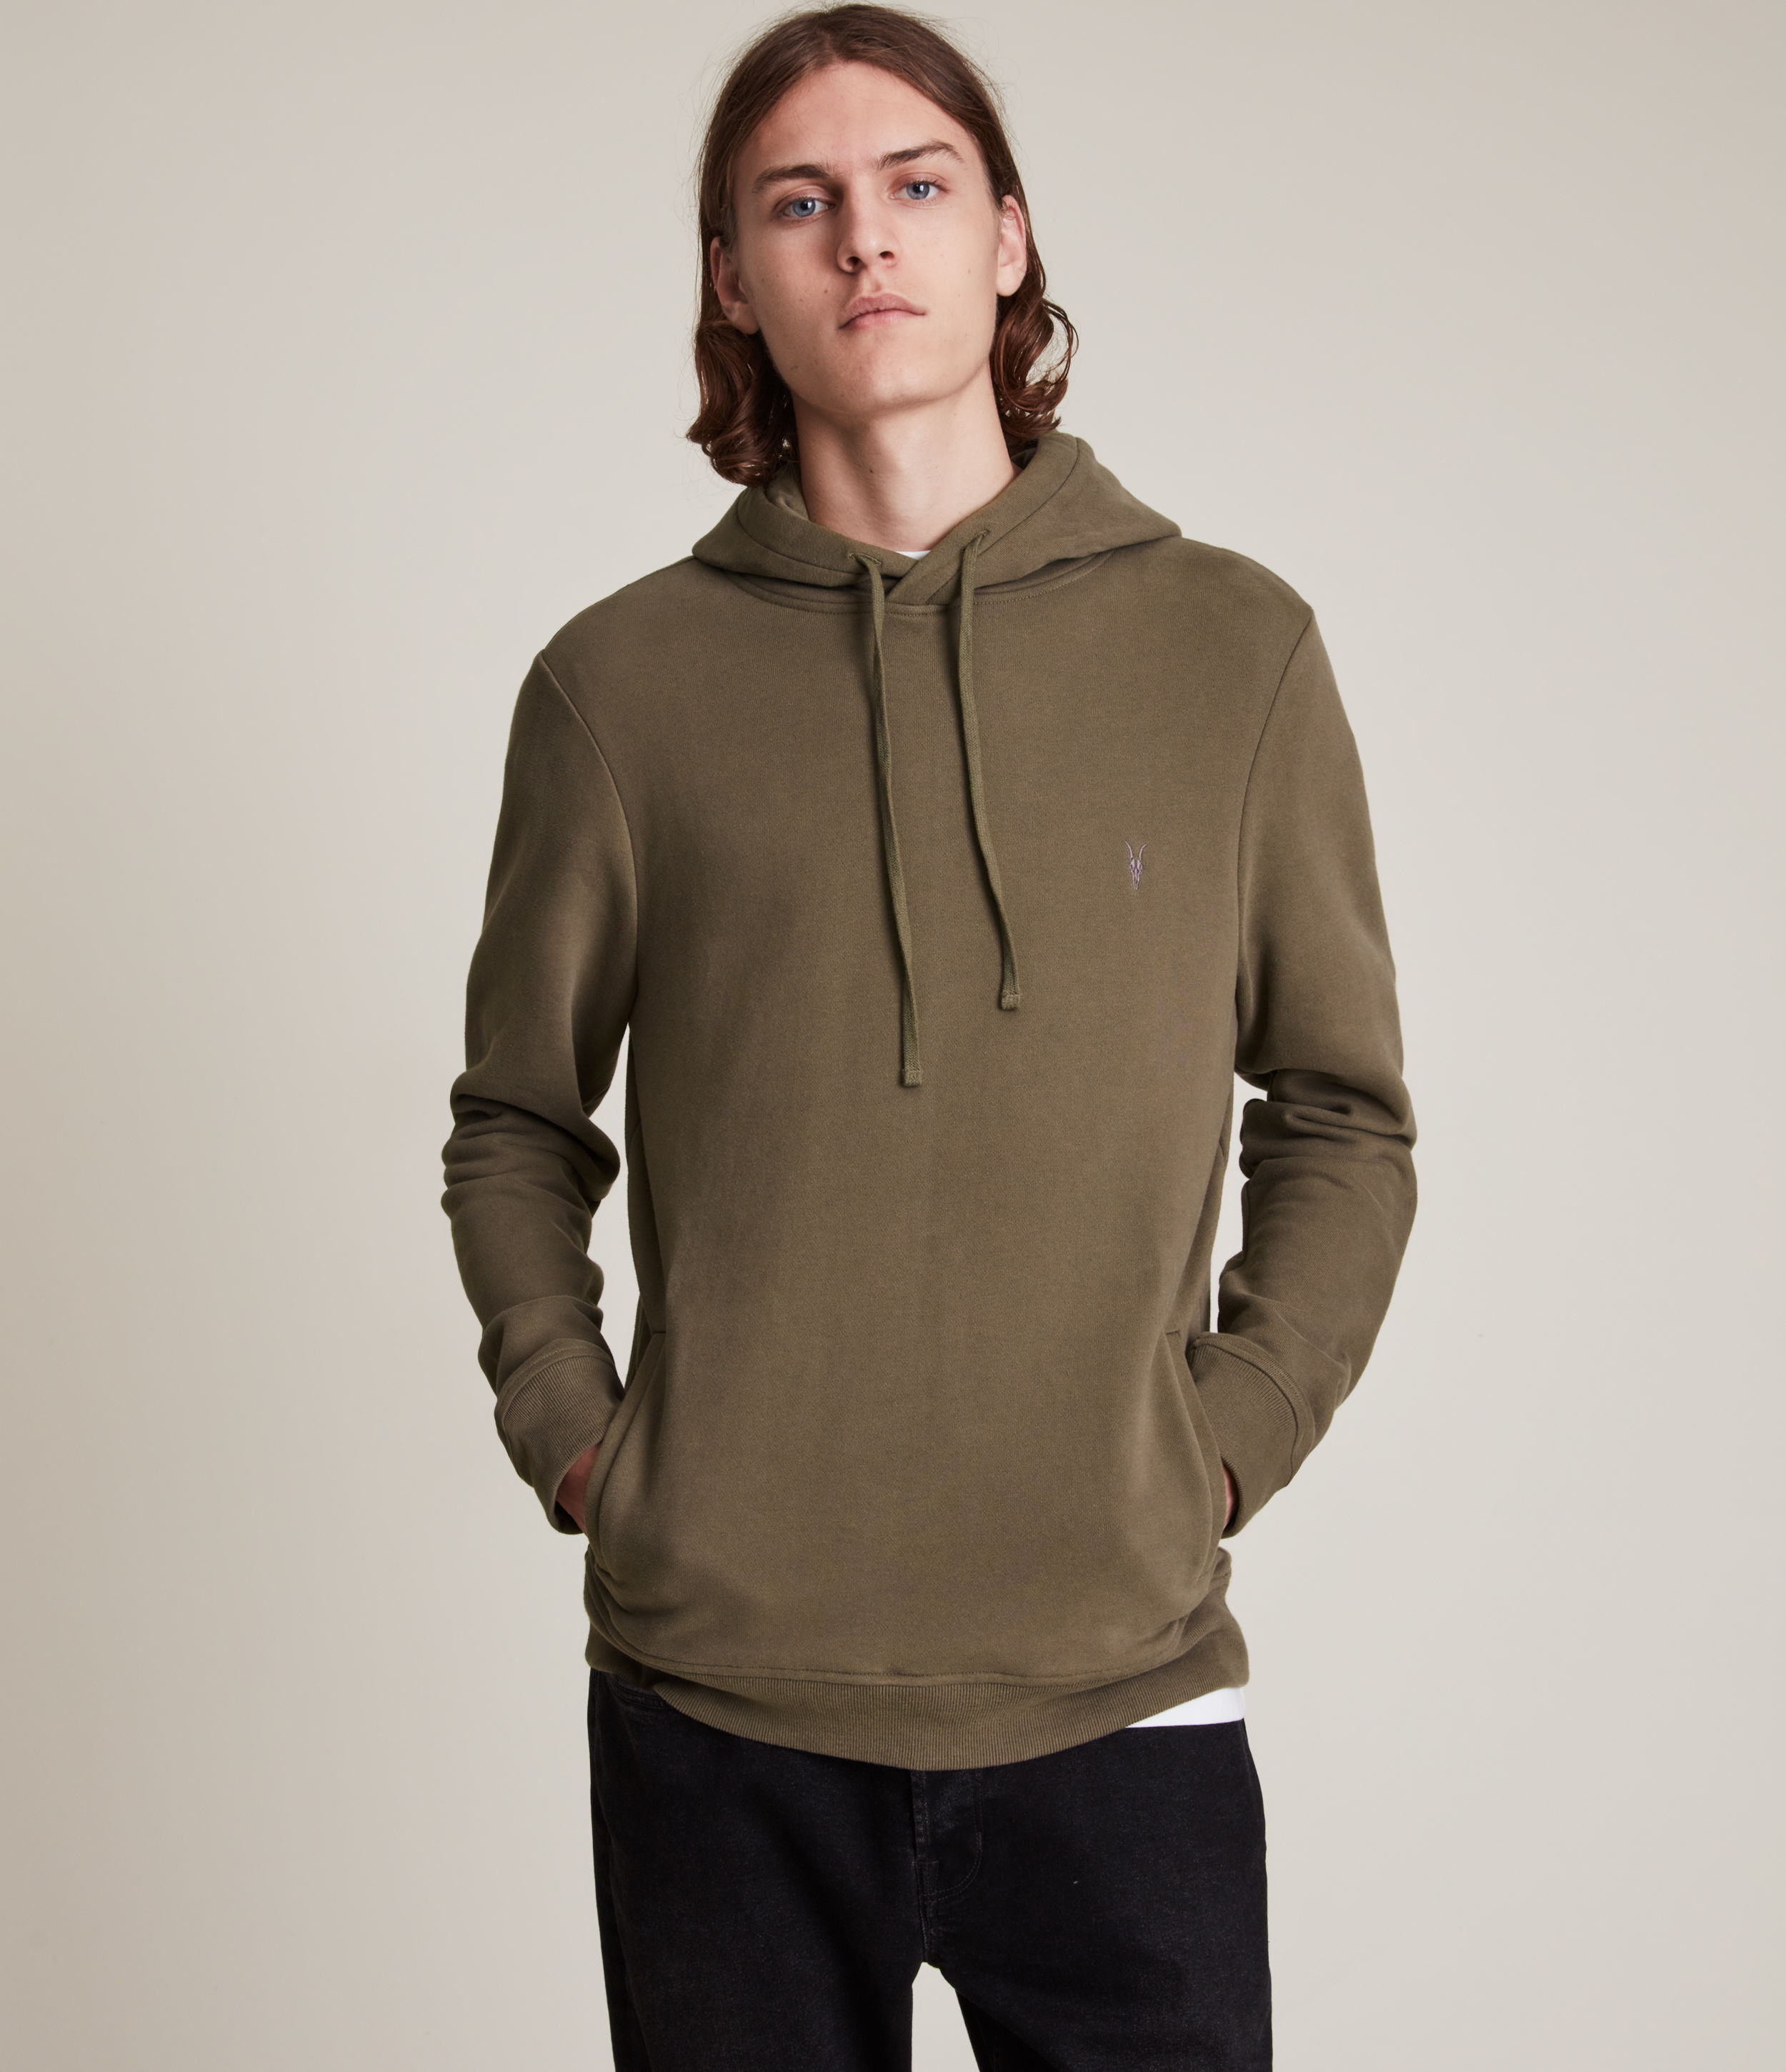 AllSaints Men's Raven Pullover Hoodie, Peppered Brown, Size: S